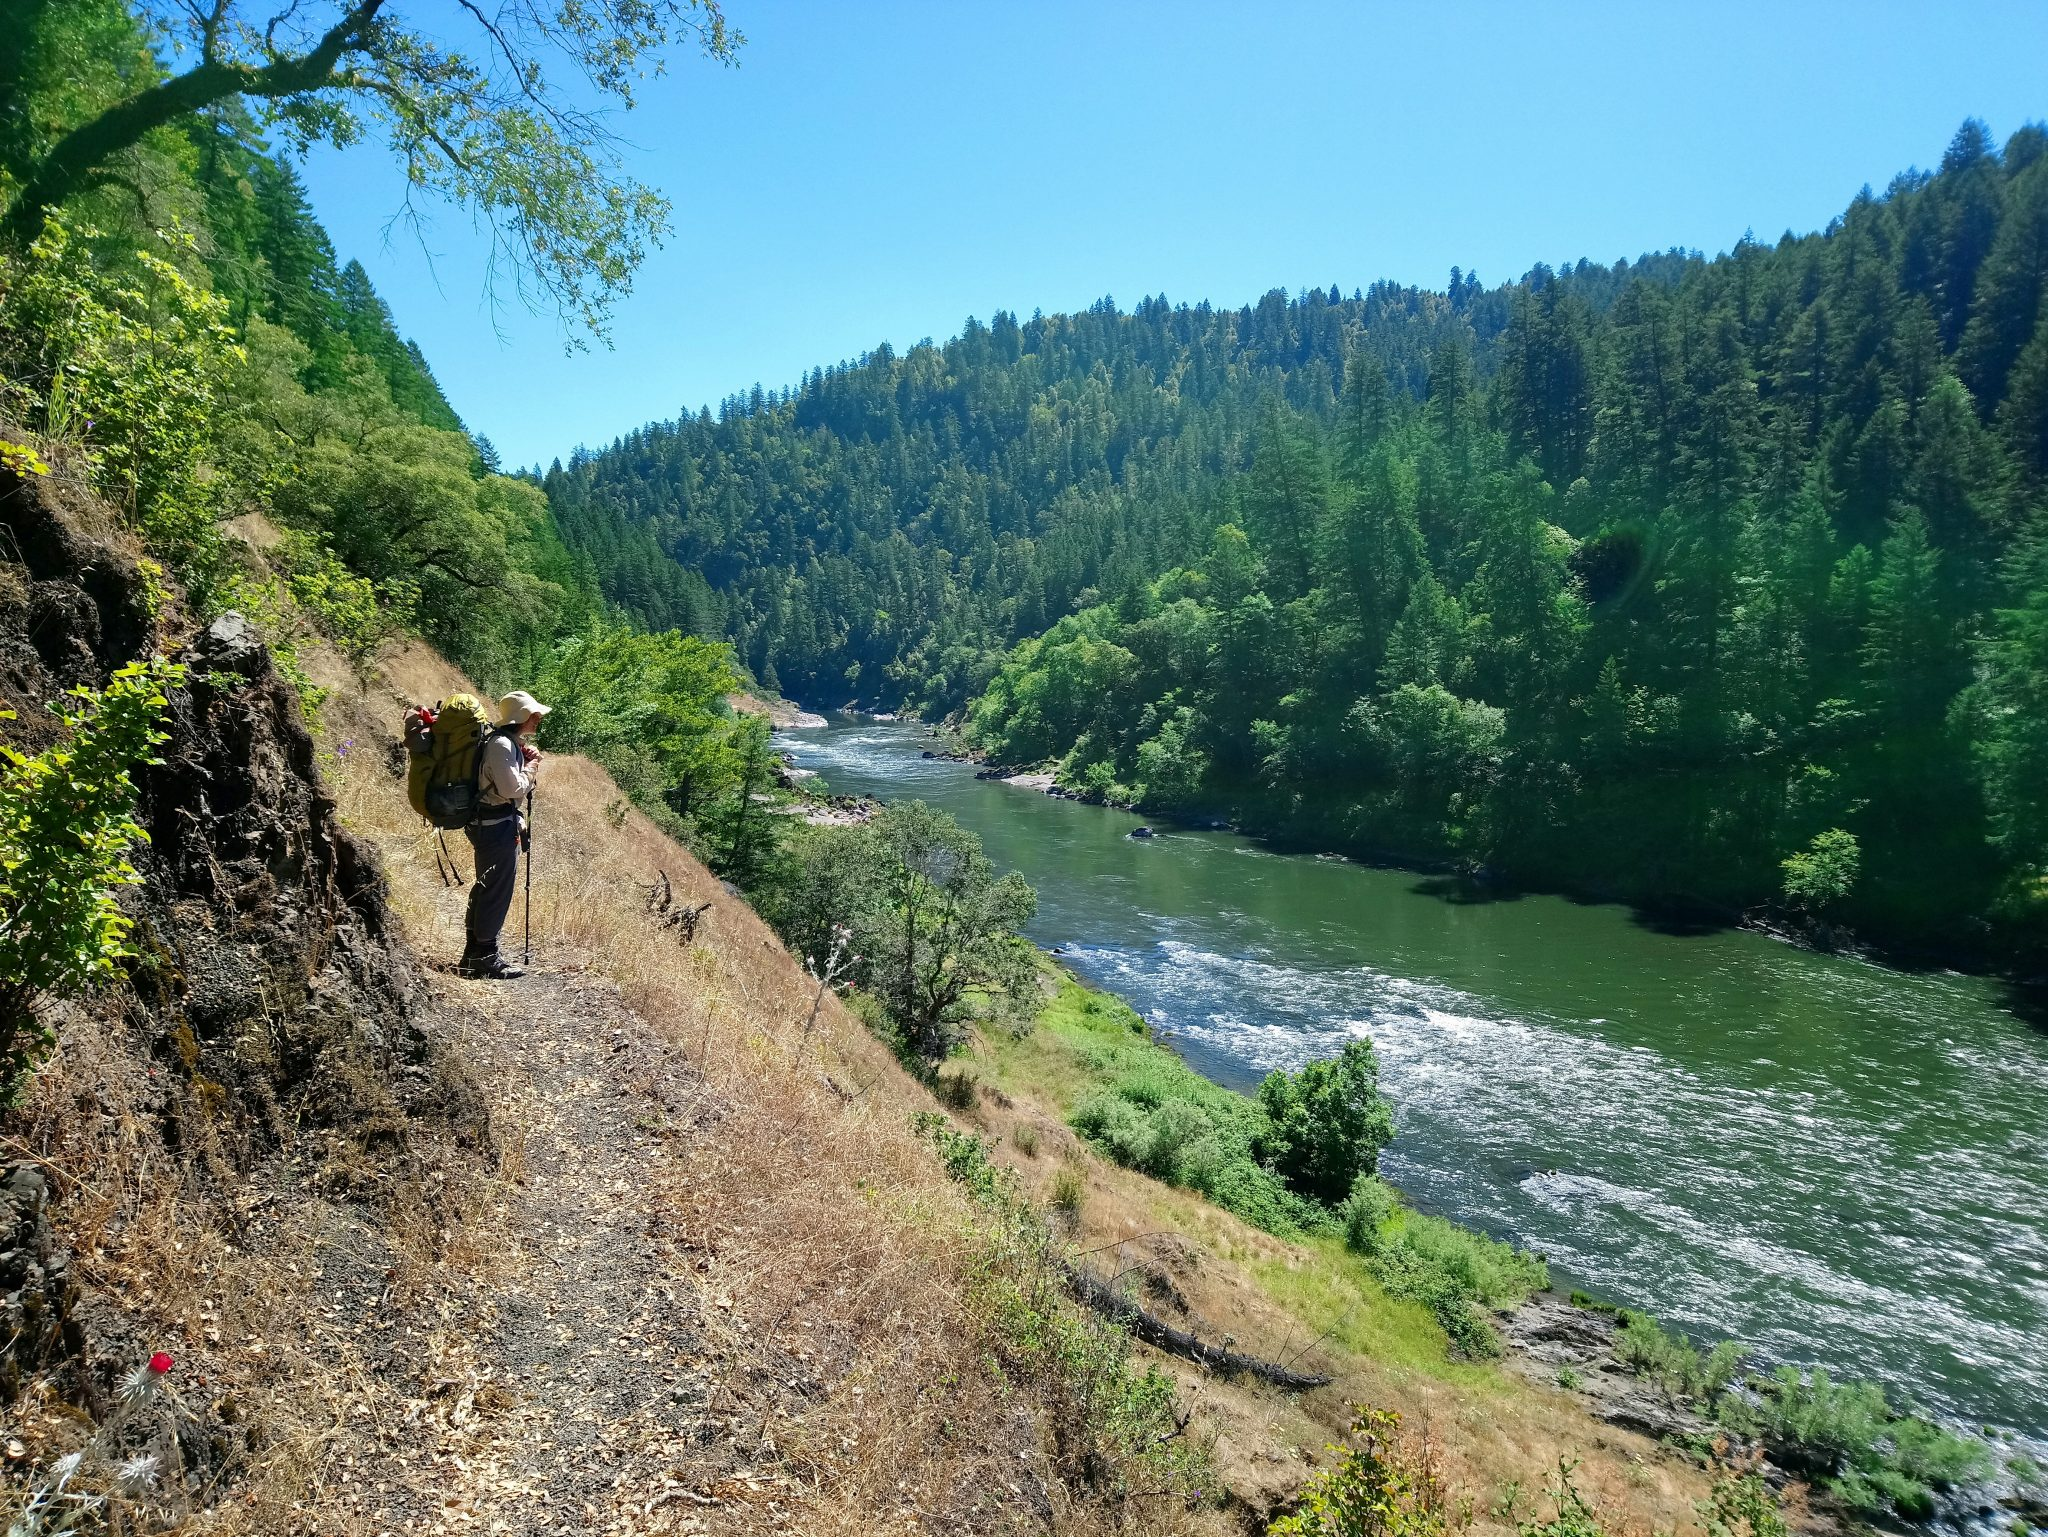 The Rogue River Trail